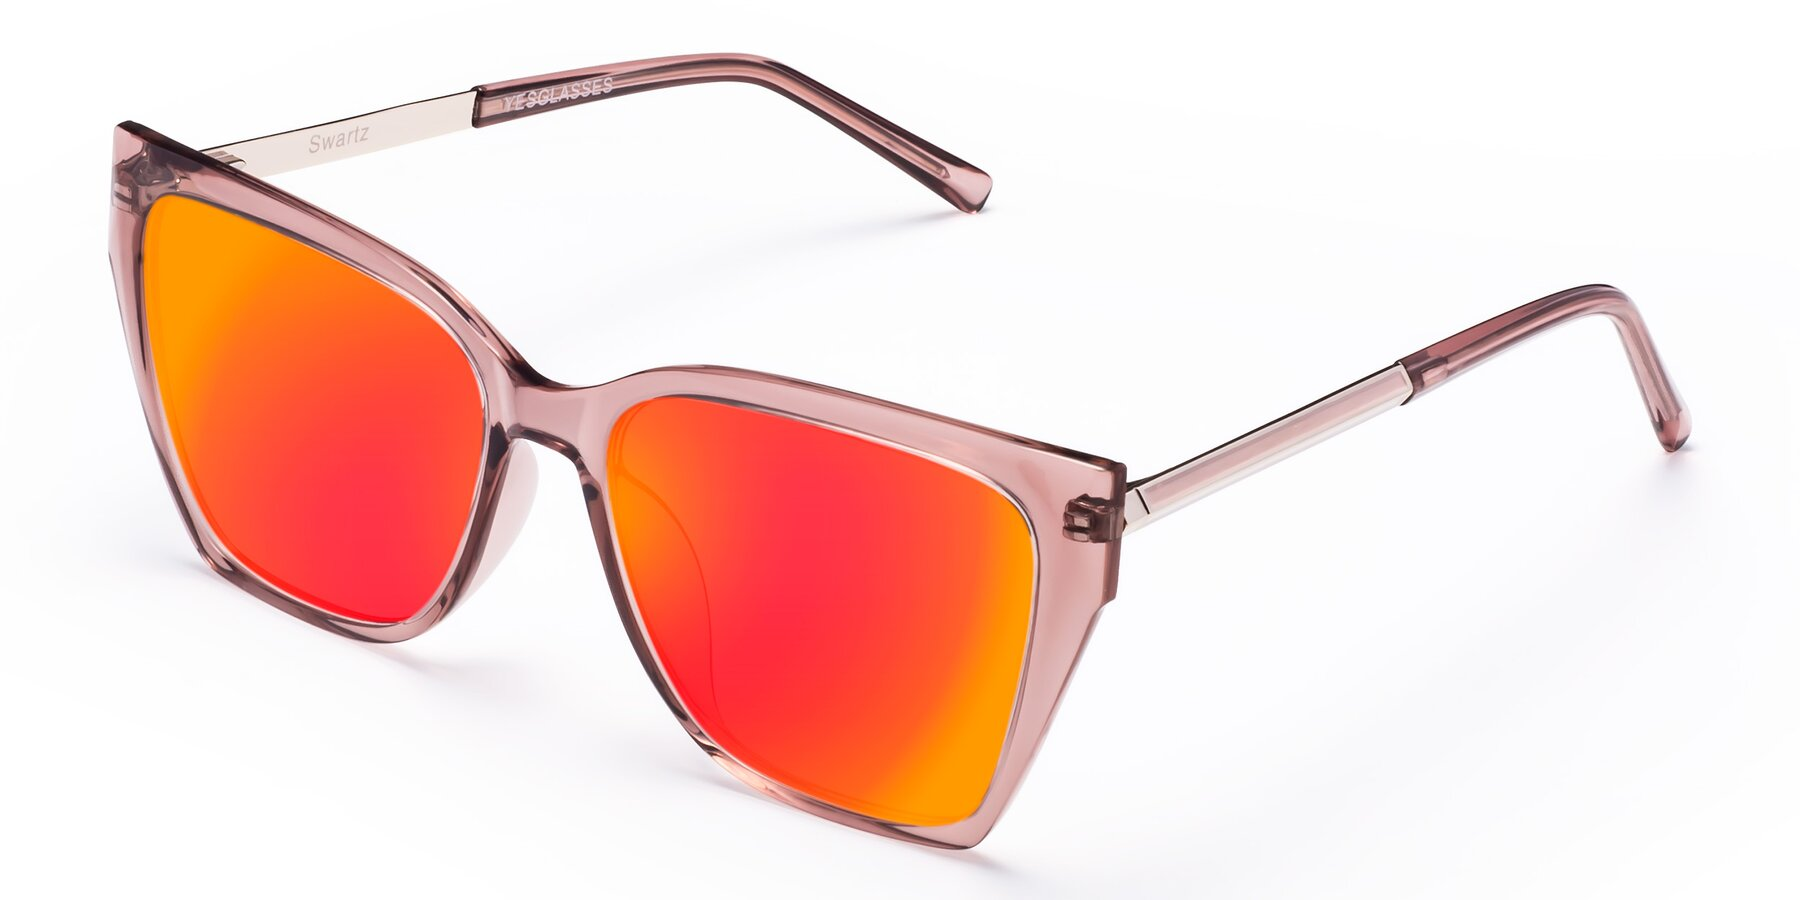 Angle of Swartz in Grape with Red Gold Mirrored Lenses